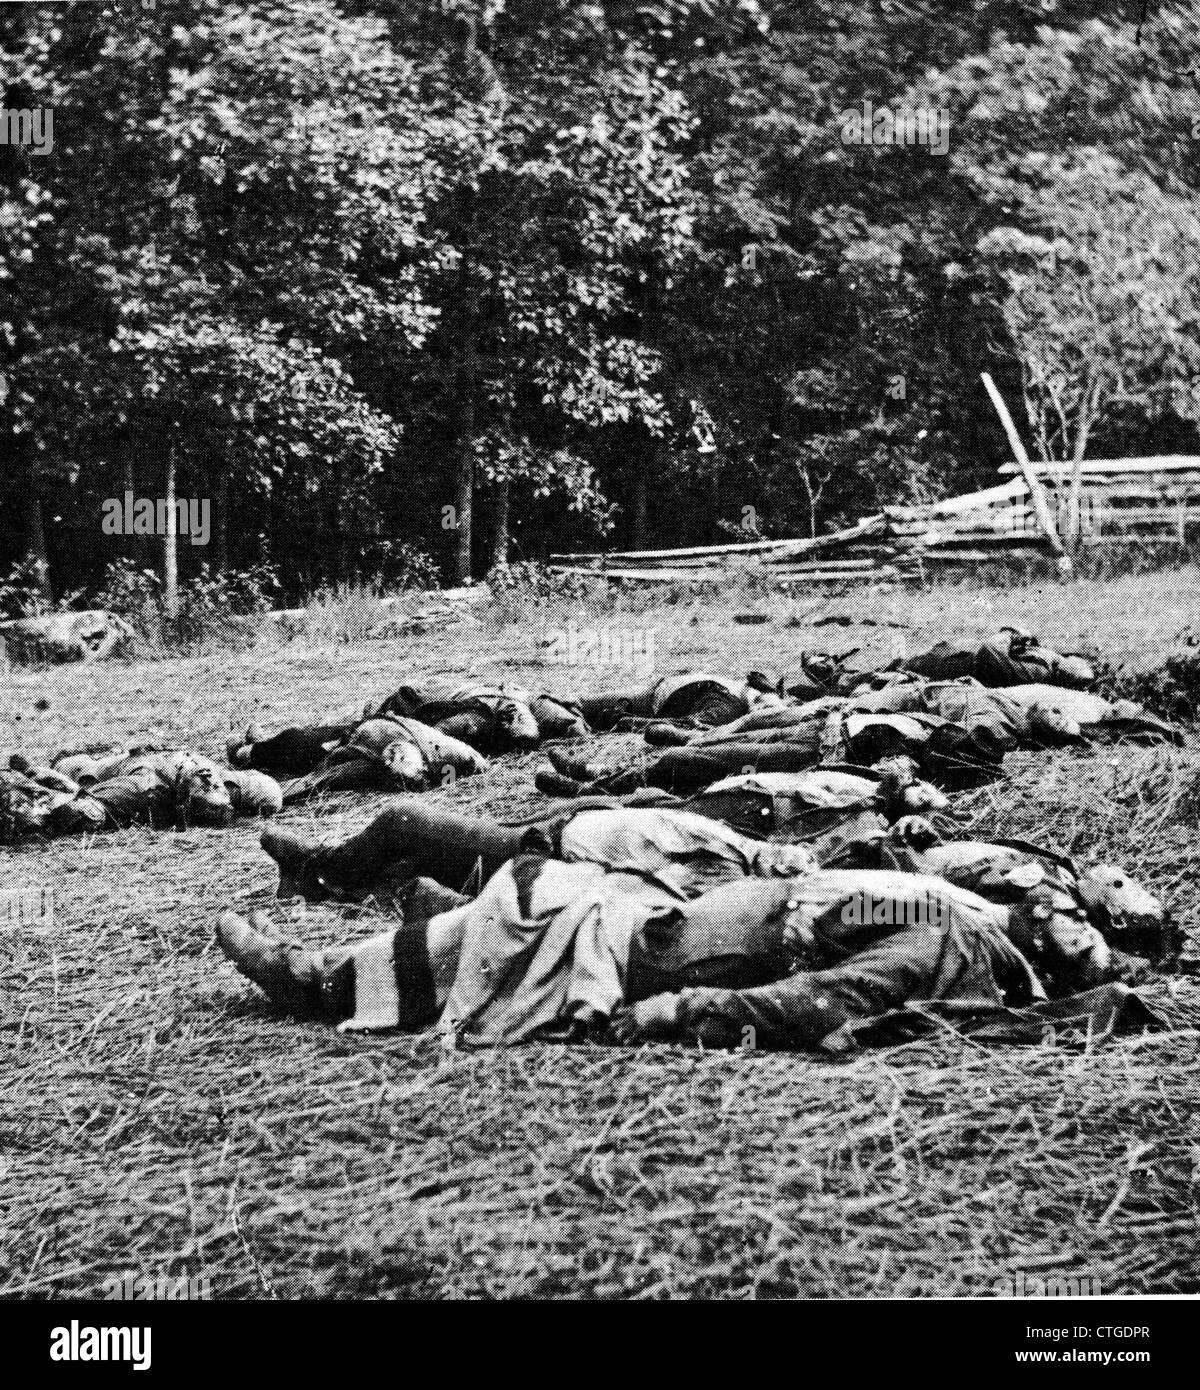 1860s JULY 1863 DEAD OF THE MICHIGAN INFANTRY REGIMENT ON THE BATTLEFIELD OF GETTYSBURG PA USA BY BRADY ASST. TIM - Stock Image